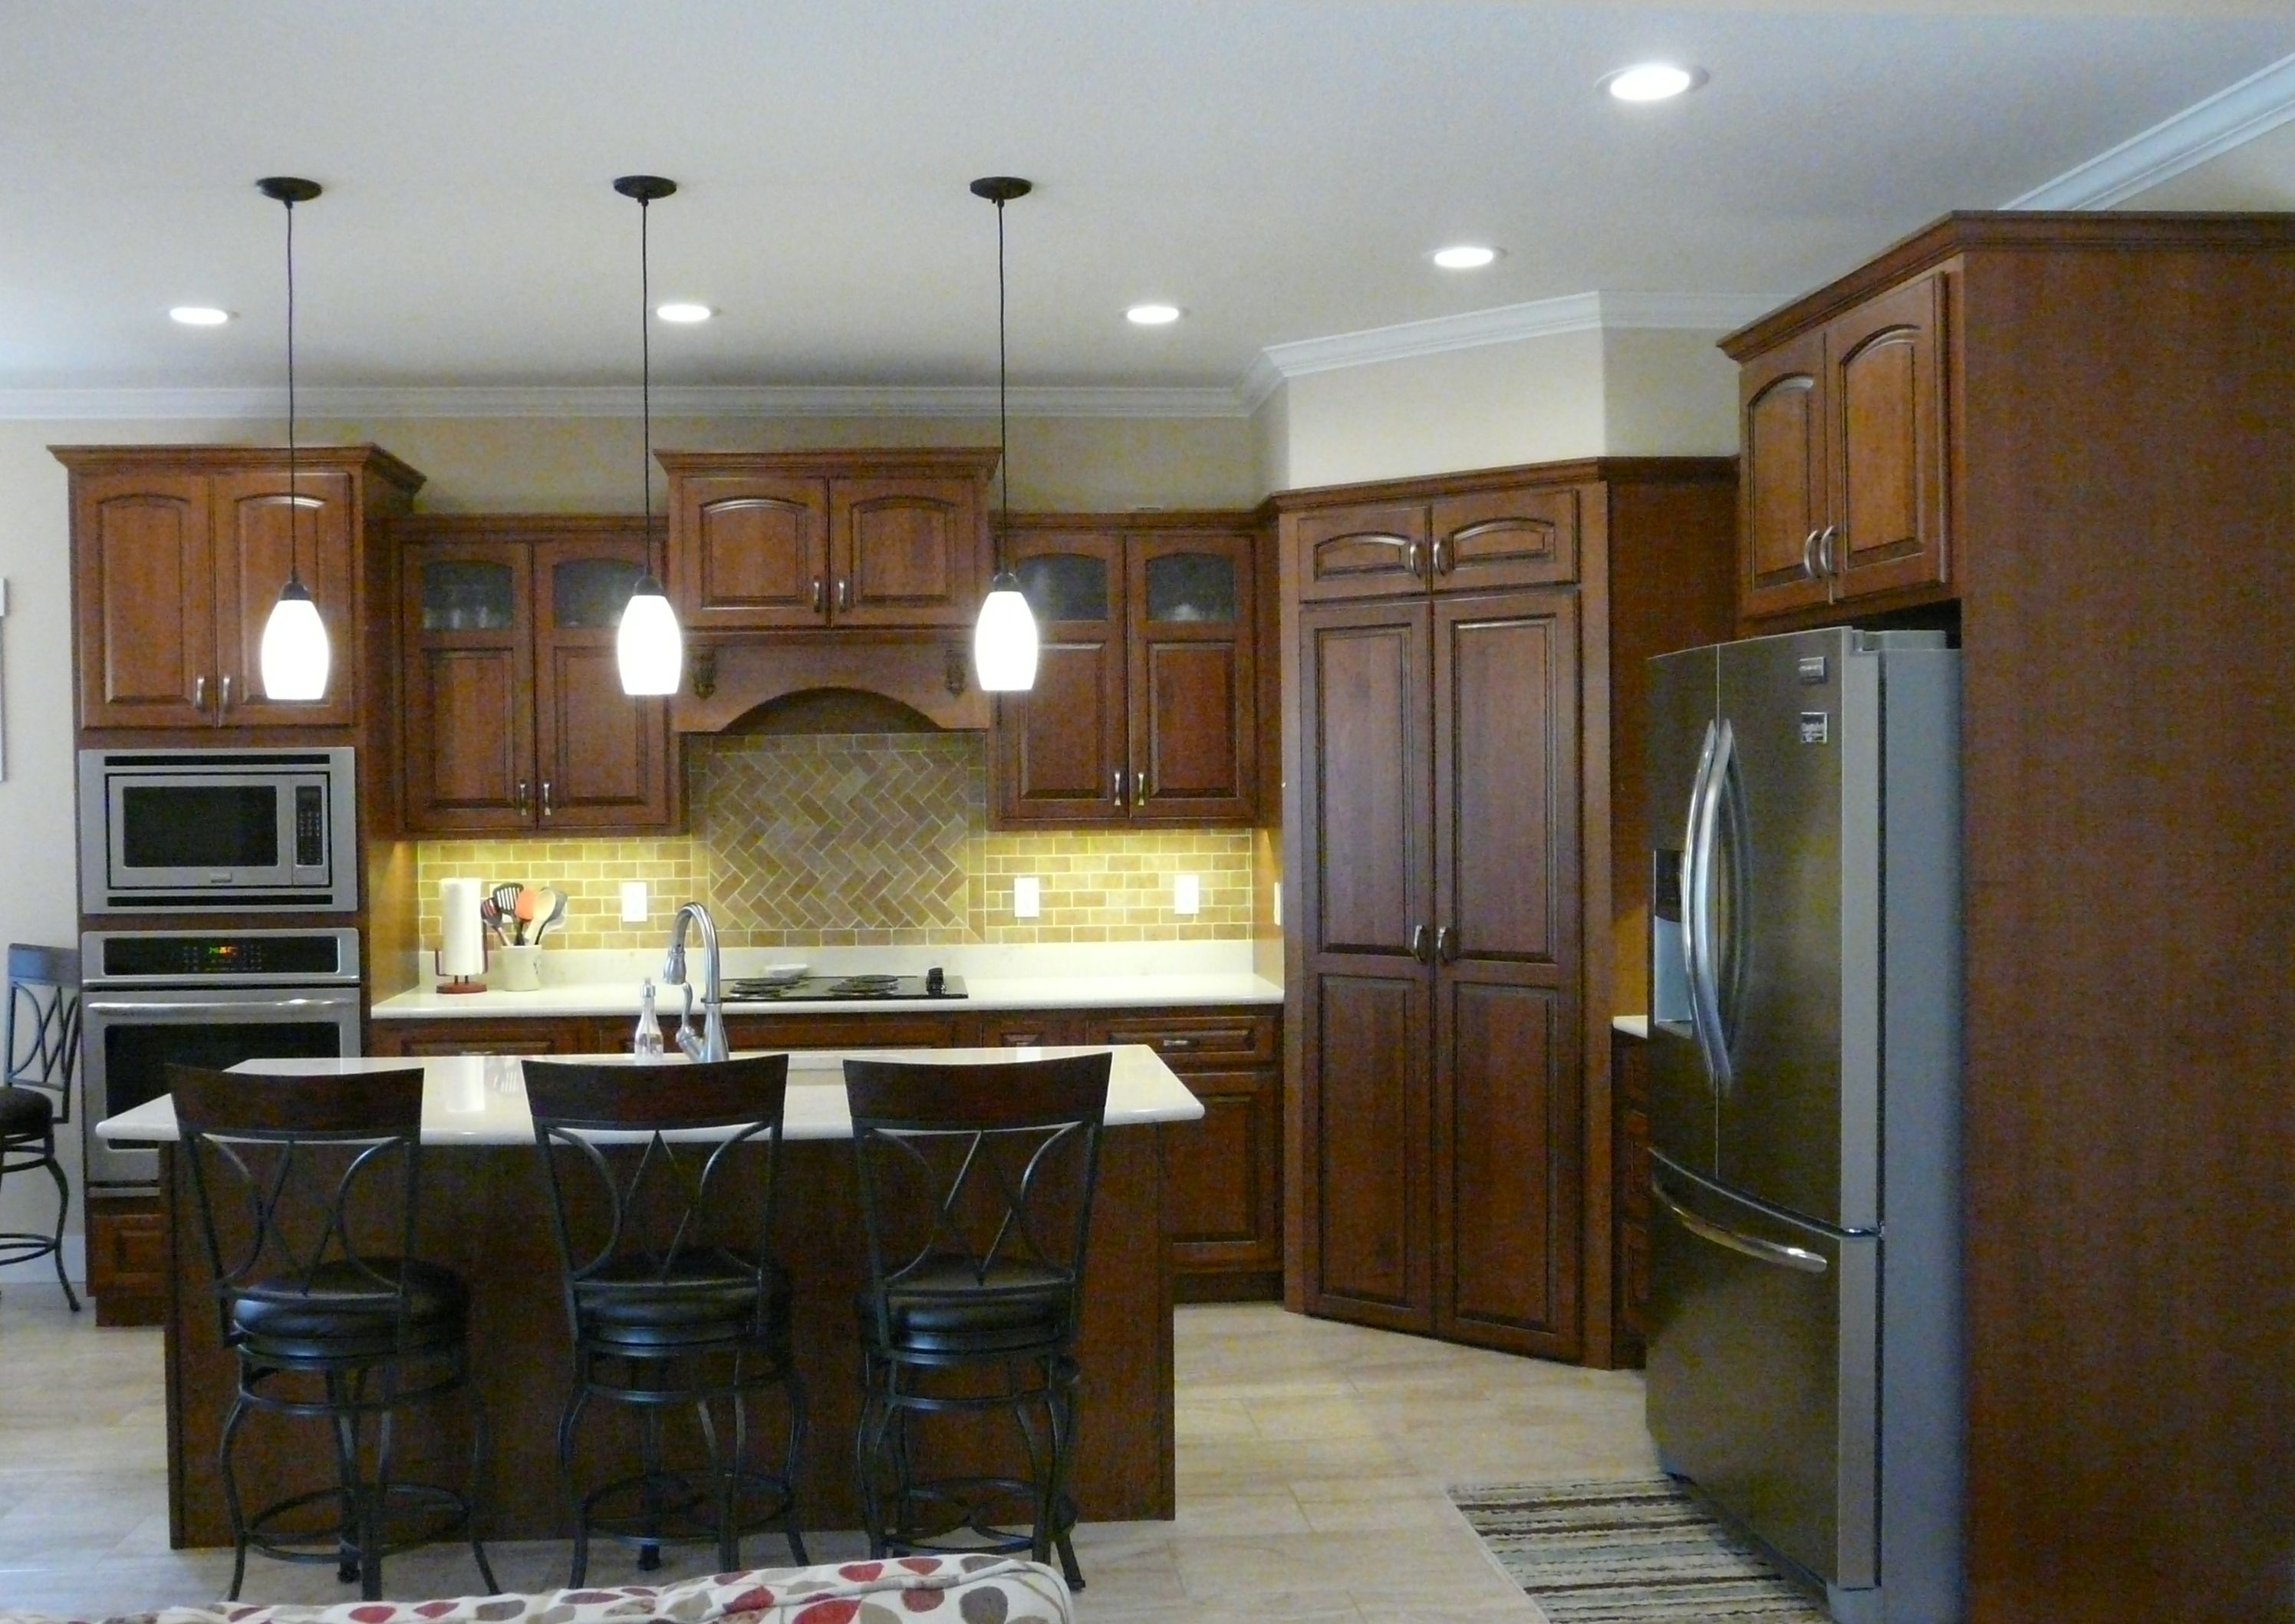 Kitchen Design Large Pantry Cabinet Stacked Cabinets With Glass Doors Home Decor Glass Cabinet Doors Interior Design